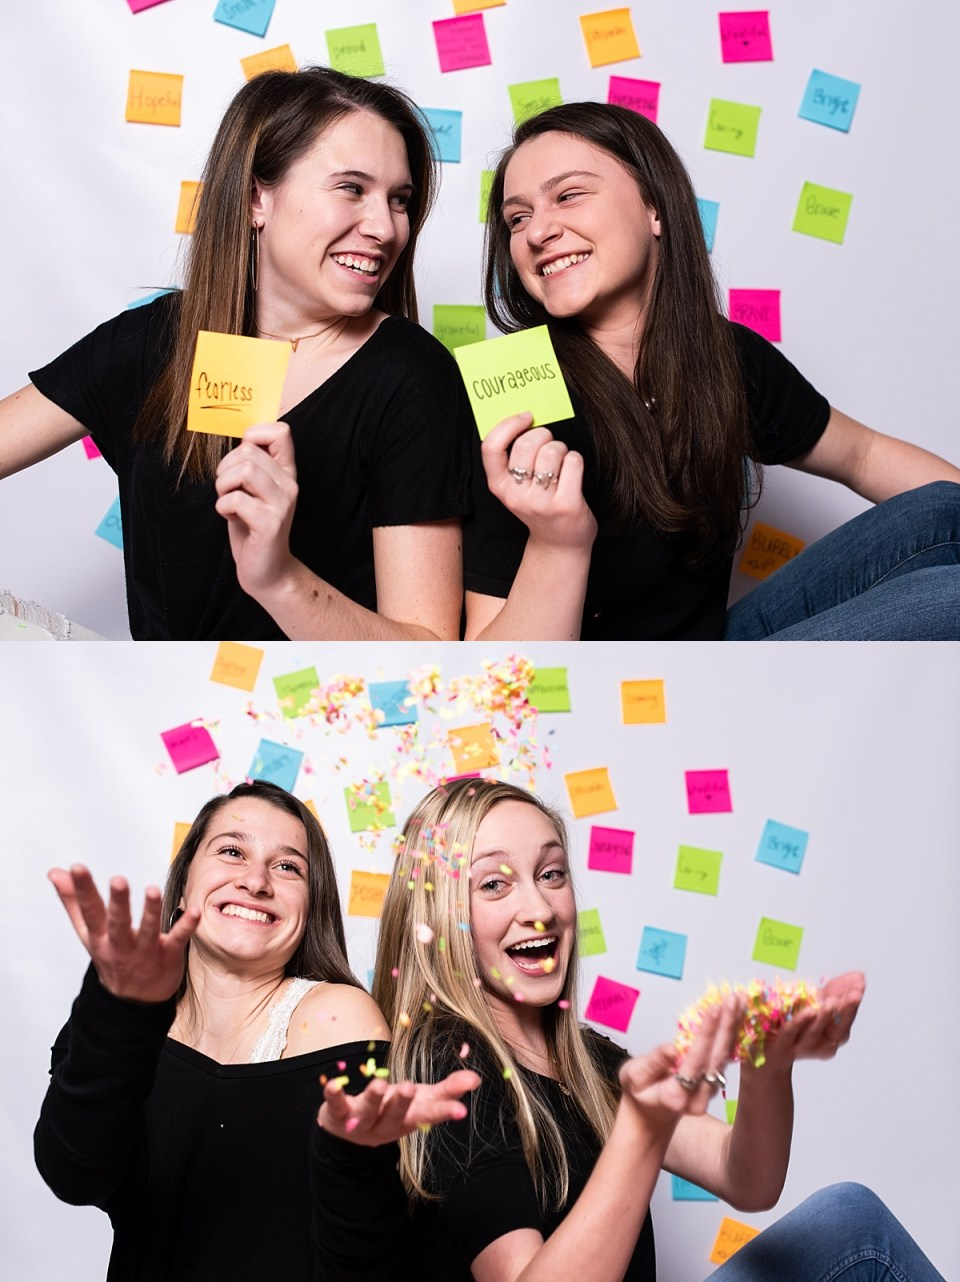 sticky notes, laura matthews, senior, vip team, glen allen, richmond, virginia